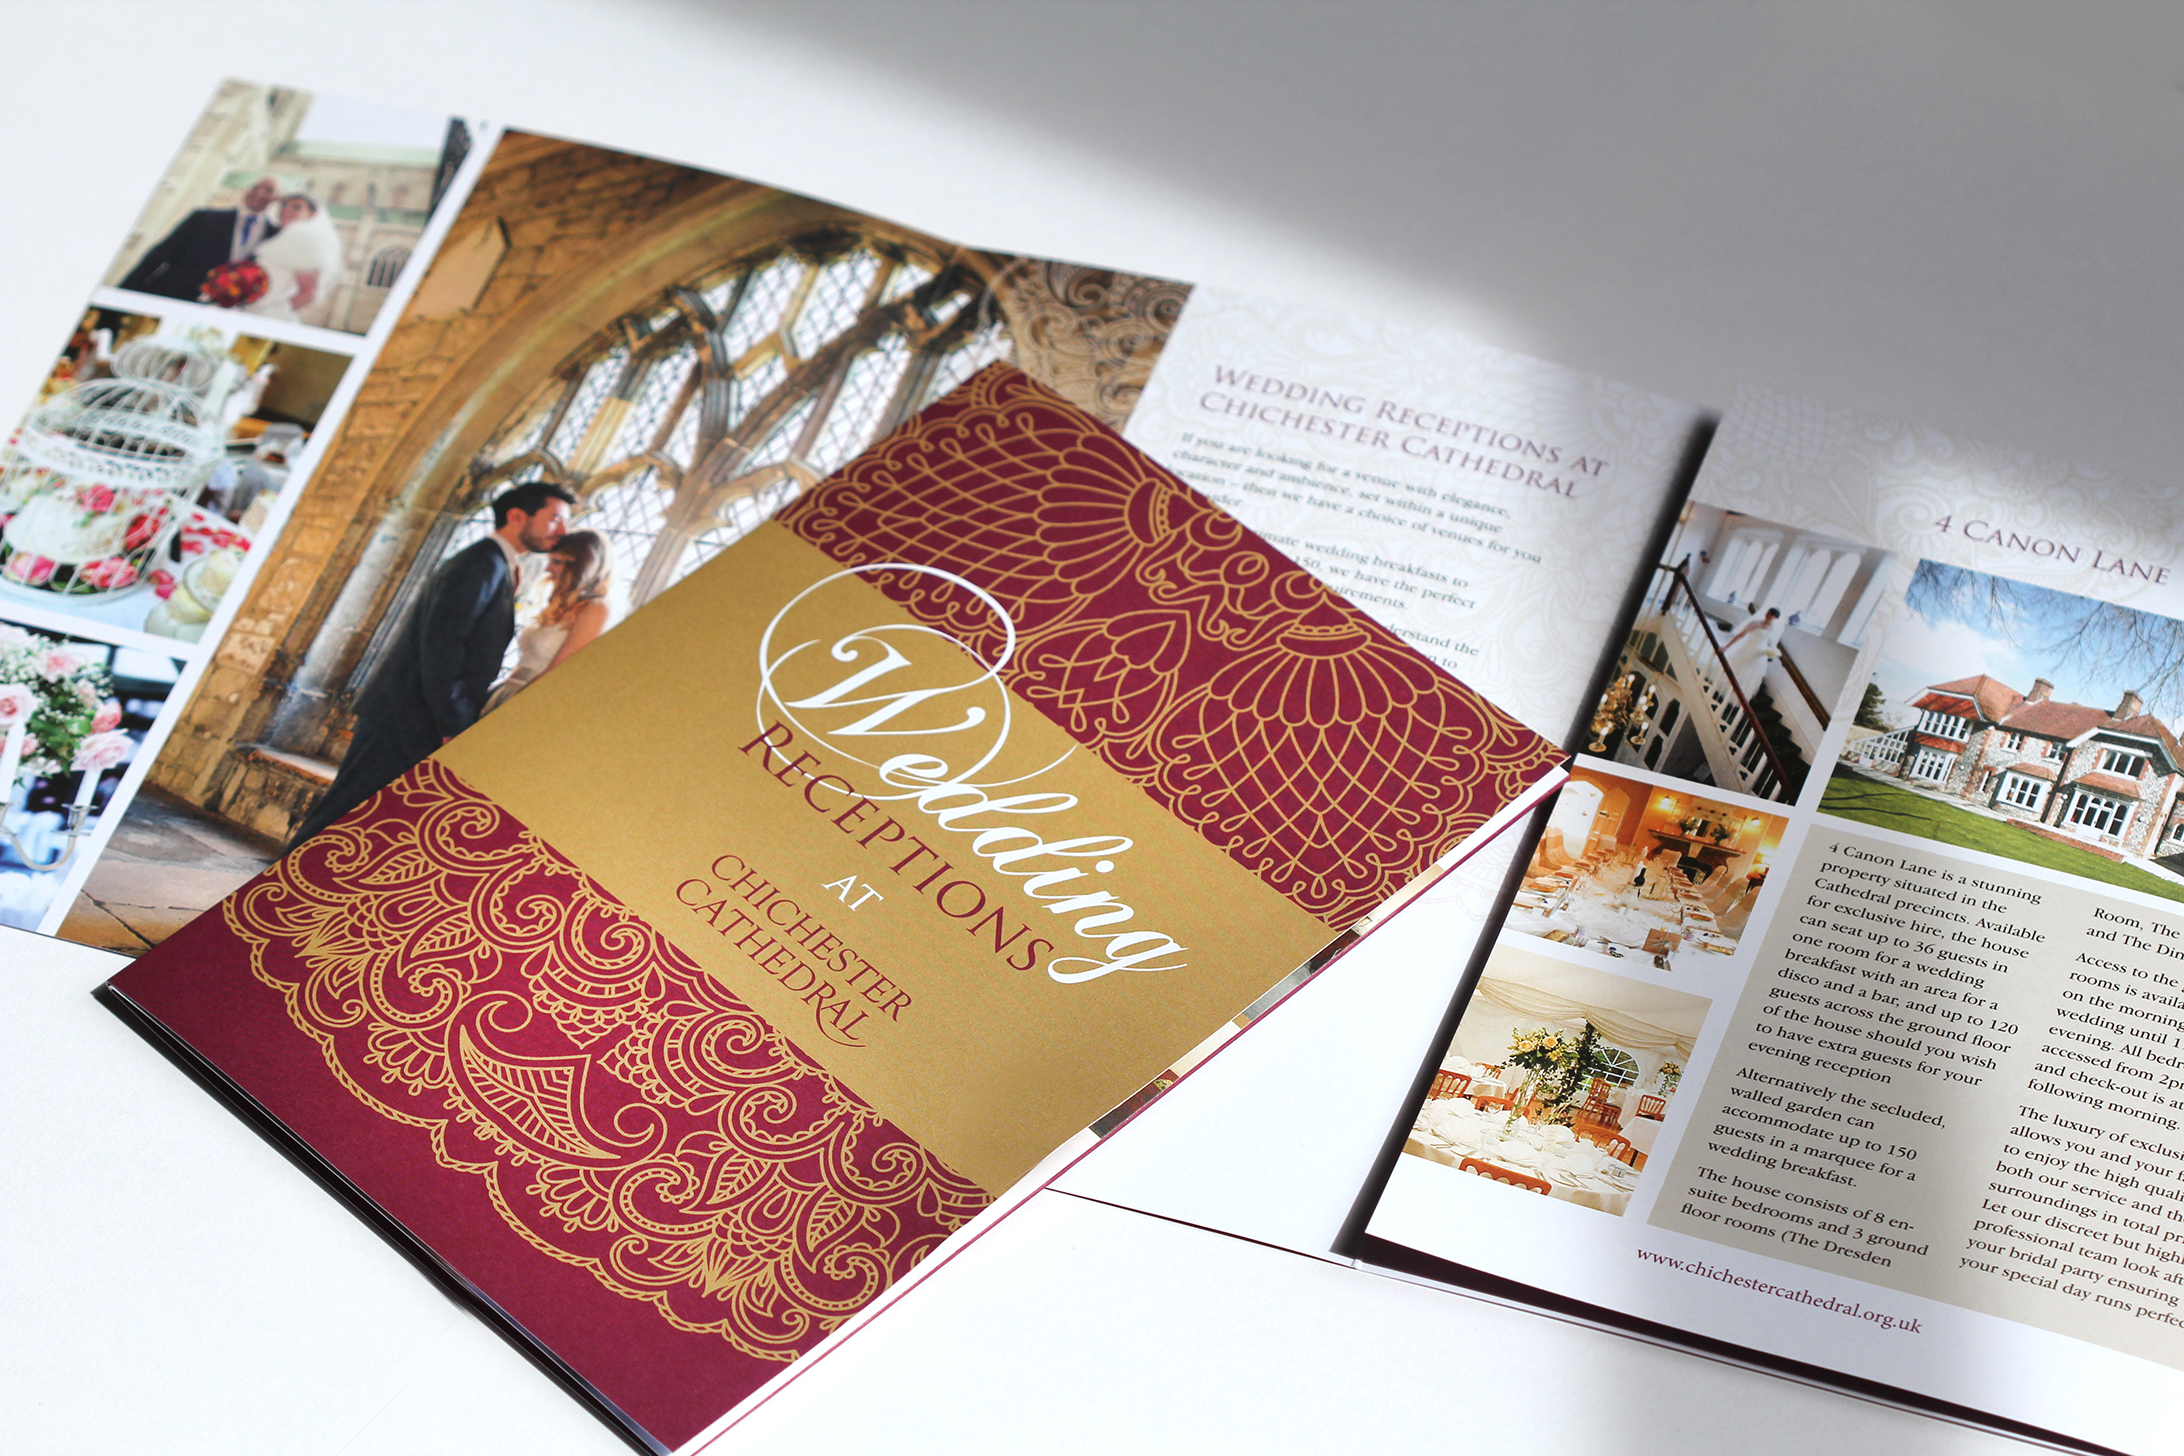 Chichester cathedral weddings brochure profile design for Brochure printing and design